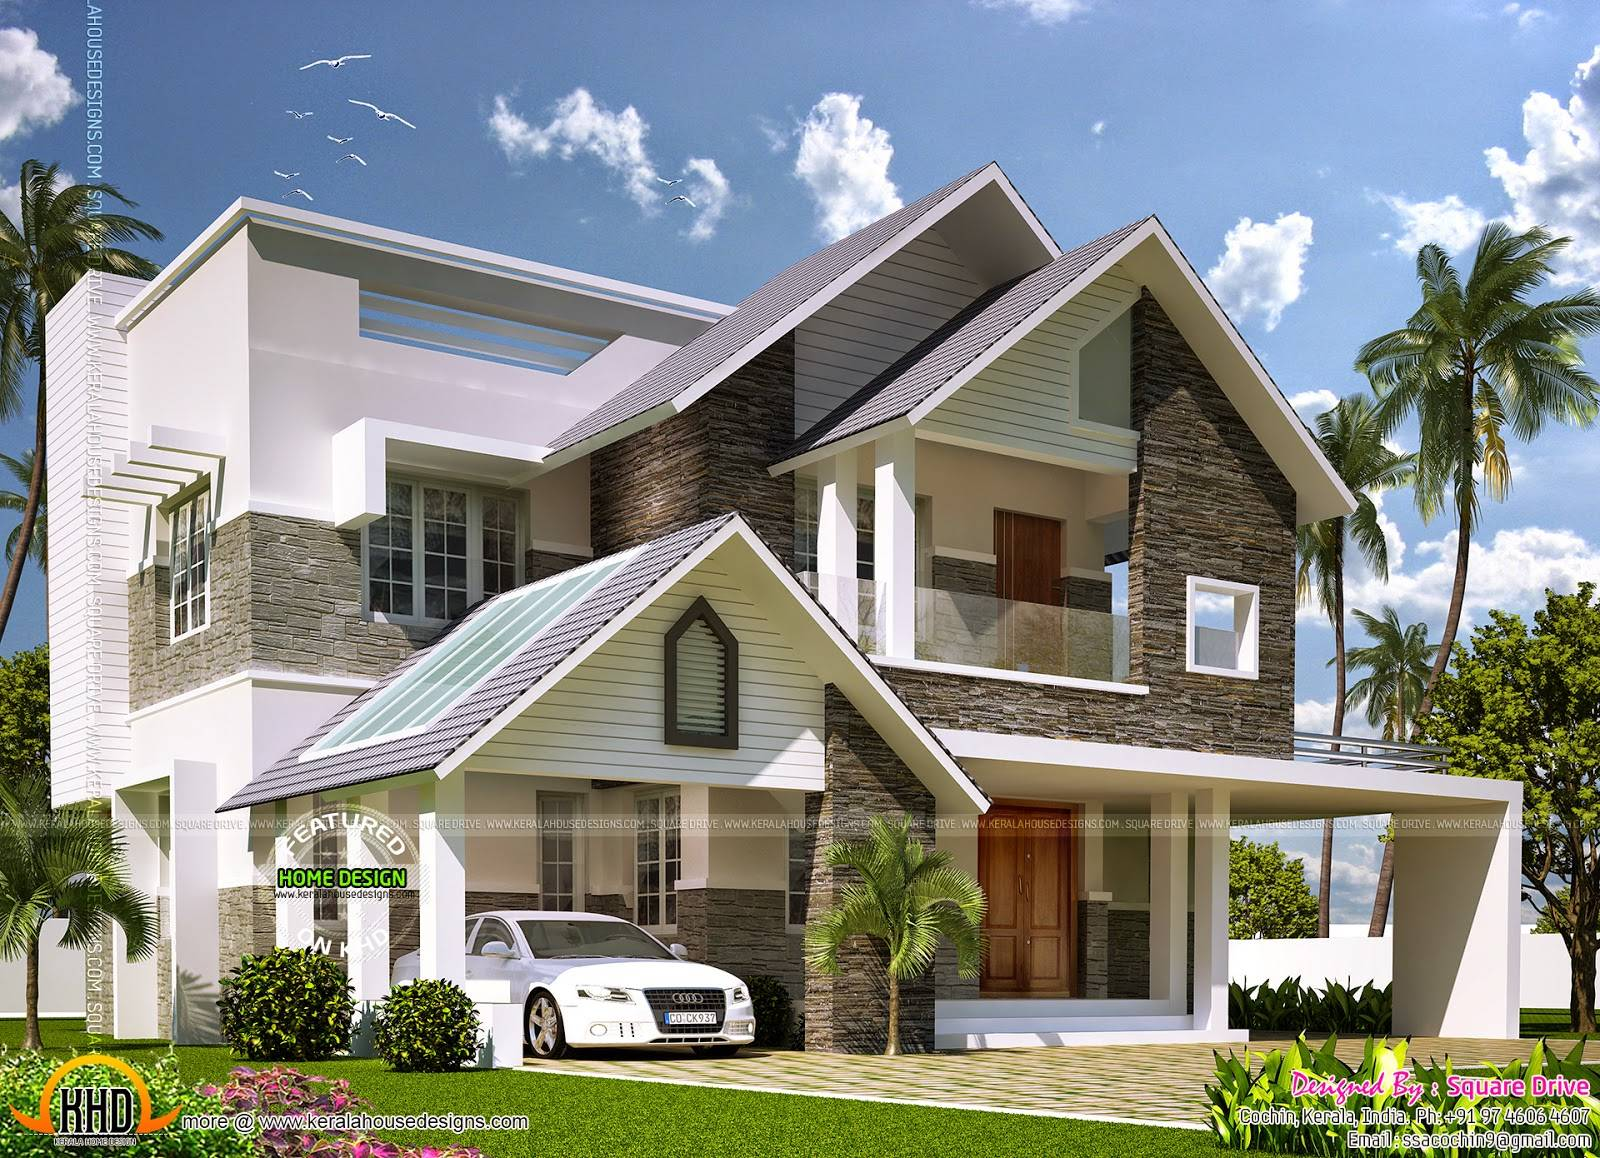 342f4a1483053c1d also 9 Sweet Stone Cottages For Hermit Wannabes moreover Modern Courtyard House Plan also Modern Bungalow House Design In Philippines besides Exterior Walls Paint Ideas Color Scheme Color  bination. on contemporary ranch type house